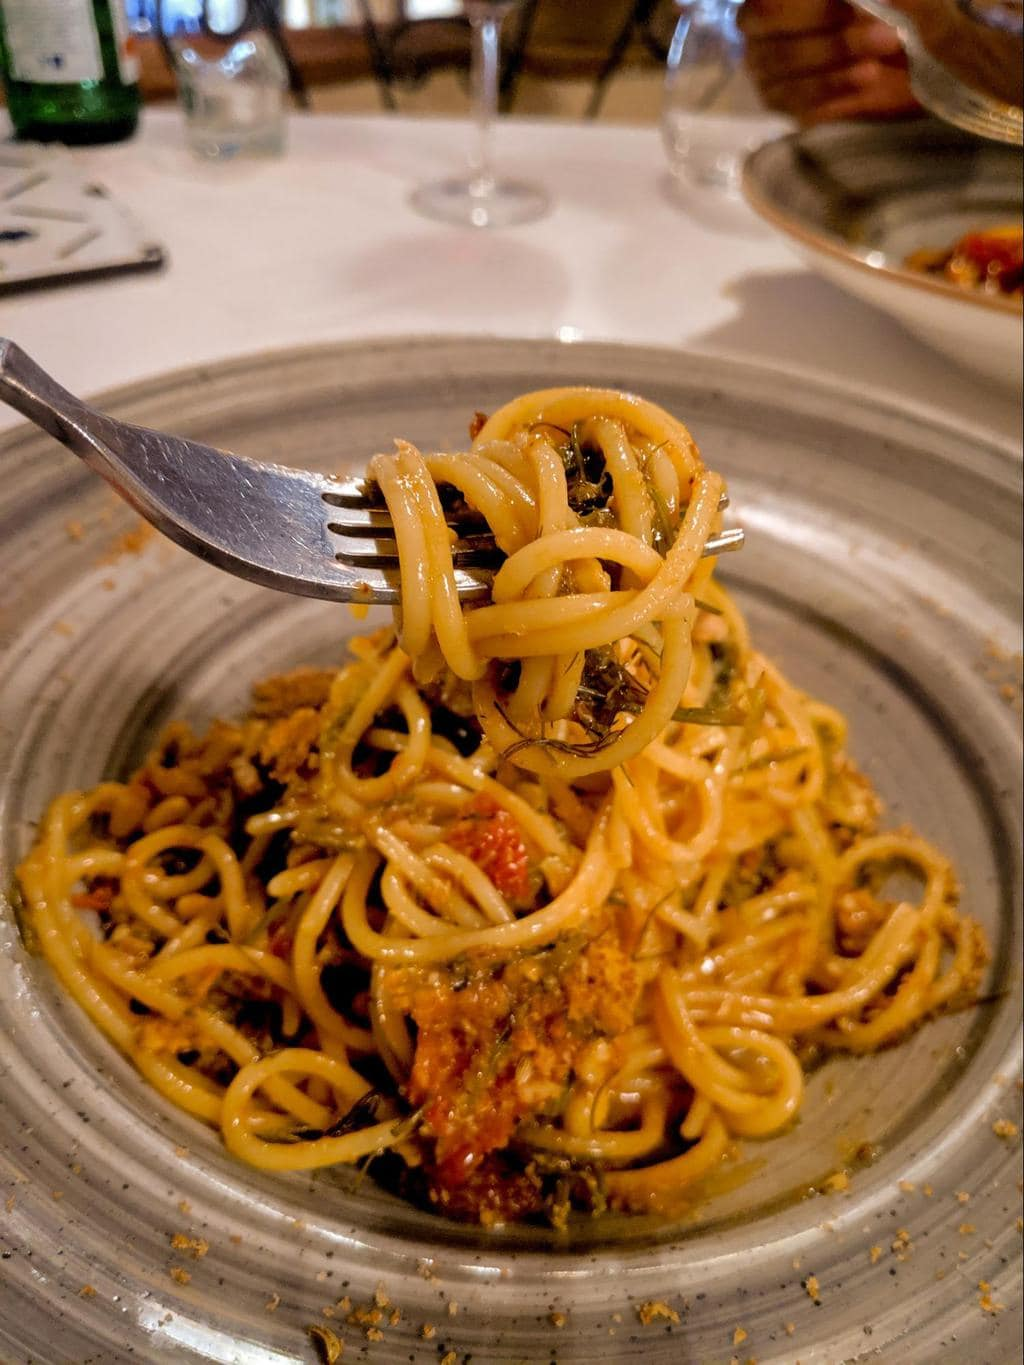 Italian meals are made of four dishes